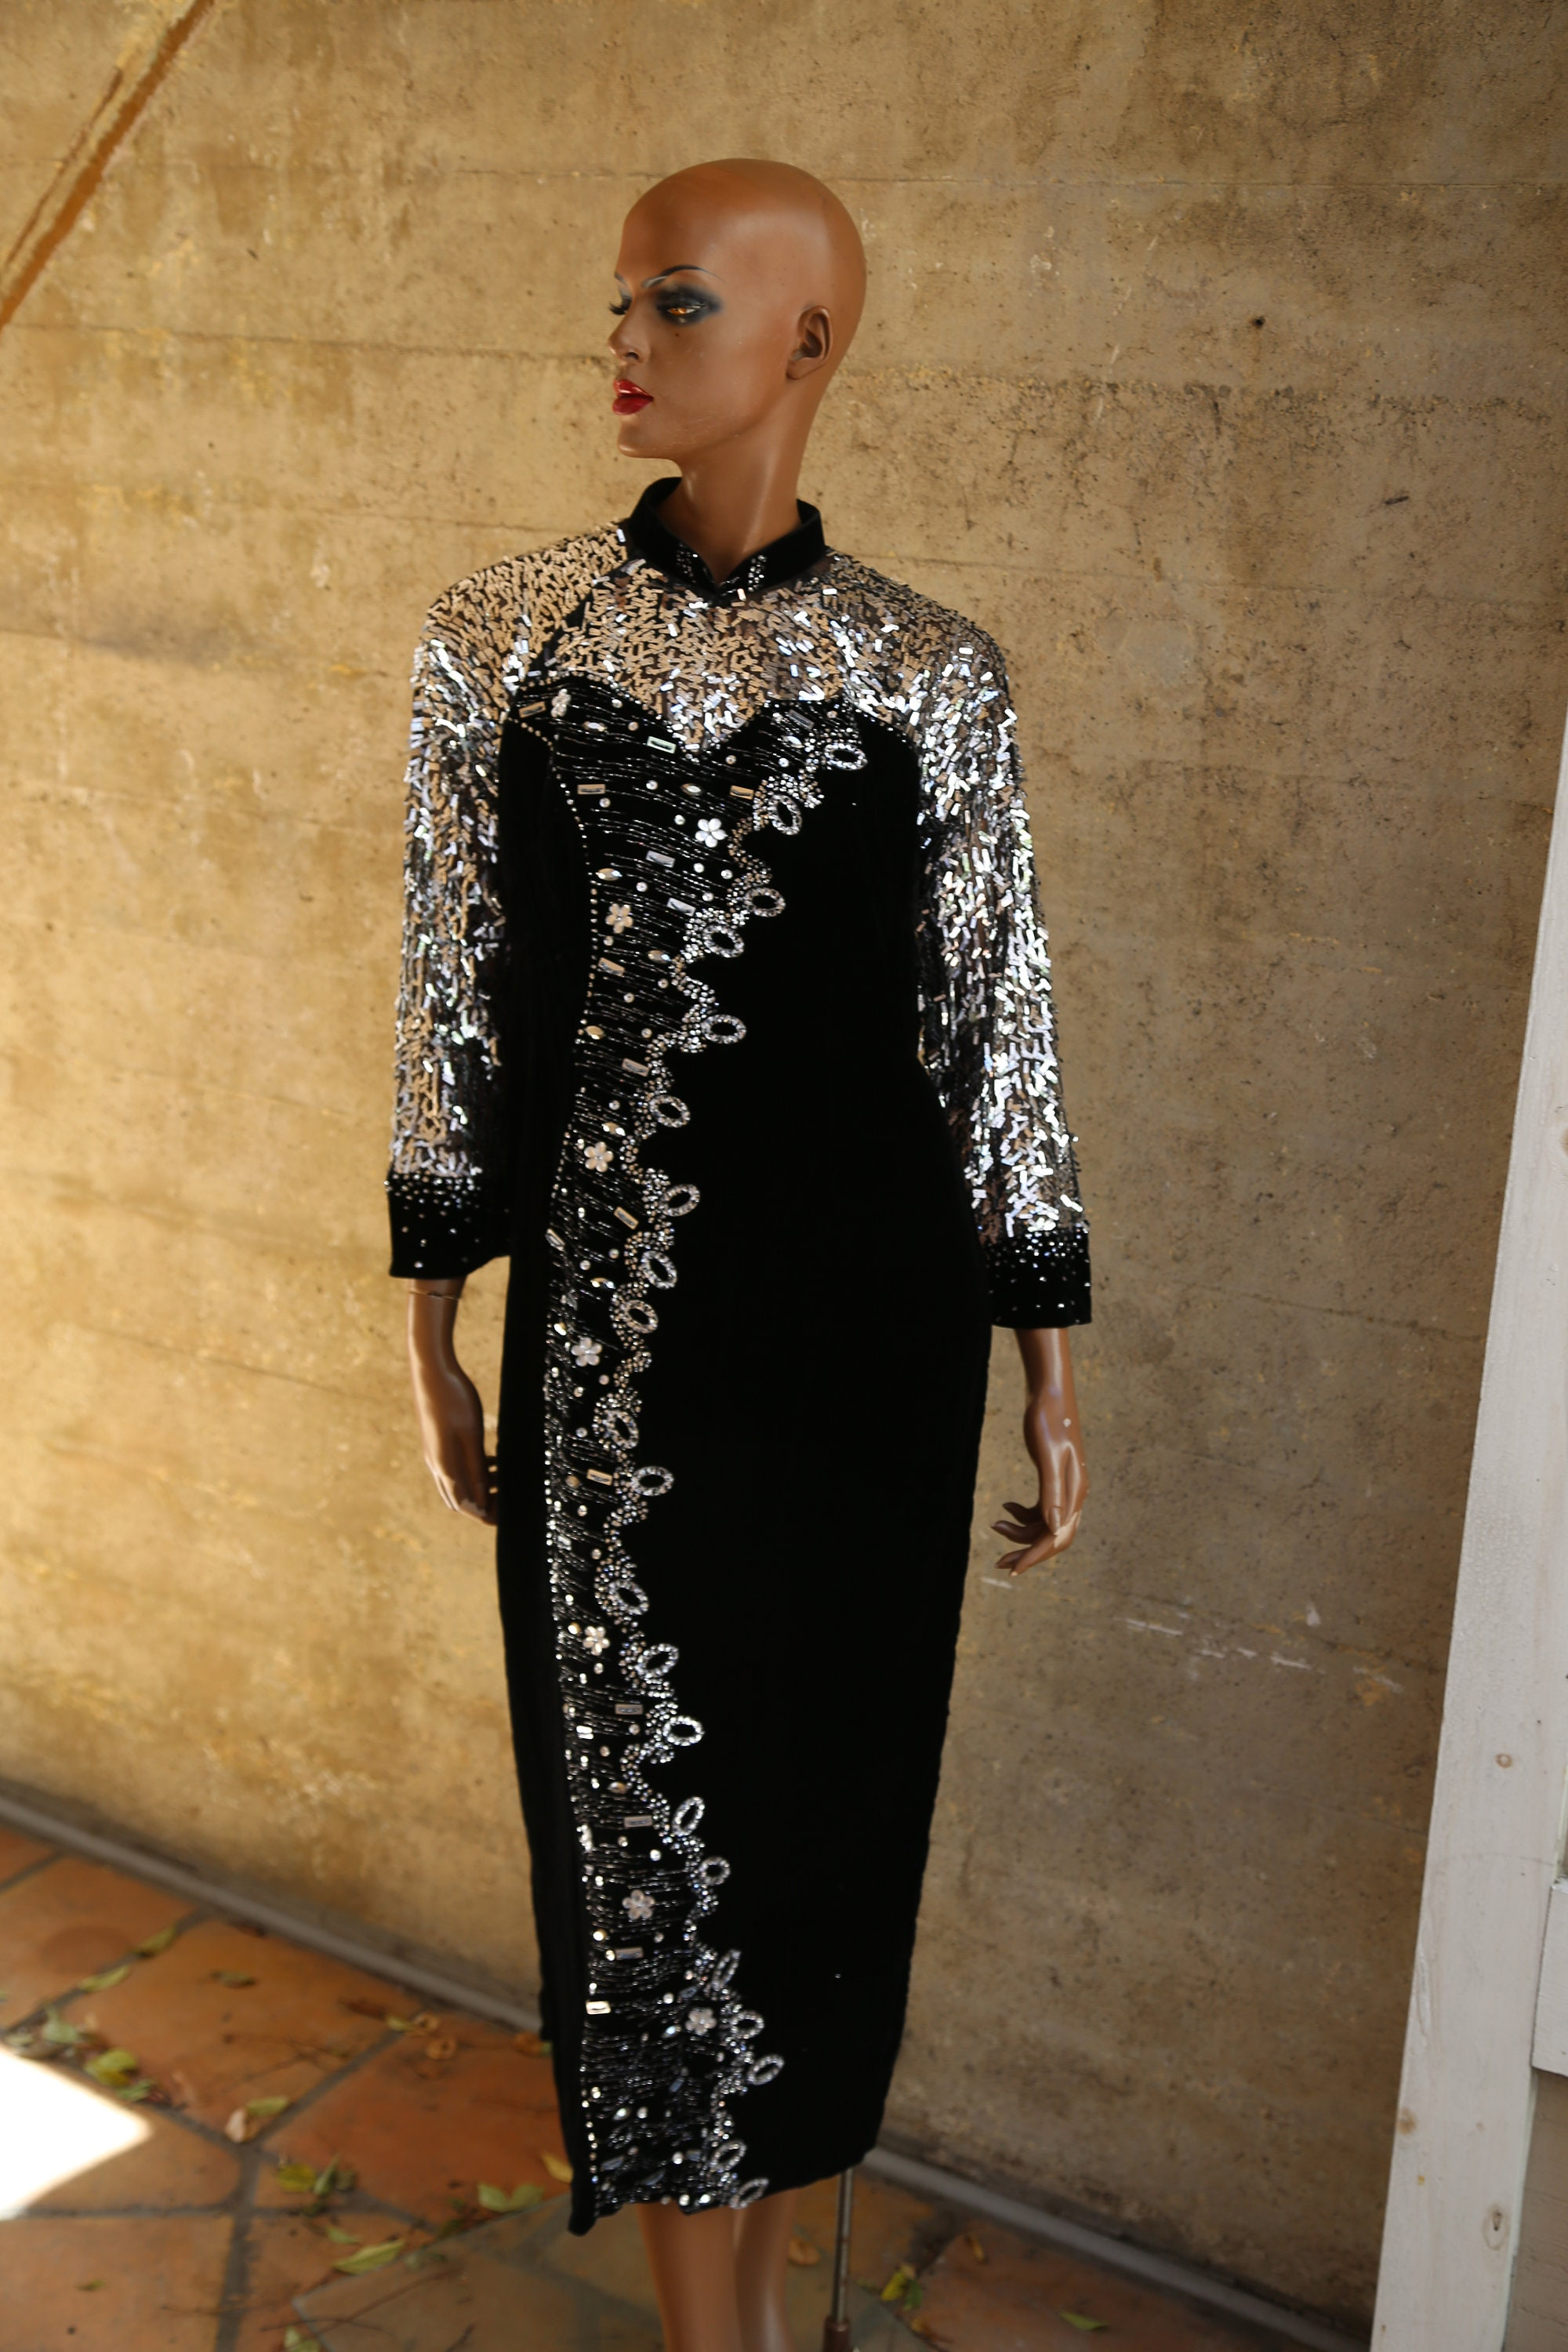 80s Dresses   Casual to Party Dresses Sequin Velvet -Like Vintage Dress Kimono Black Silver Mesh Party Cocktail Evening Gown Stunning Beautiful Unique Ootn Musician $35.00 AT vintagedancer.com